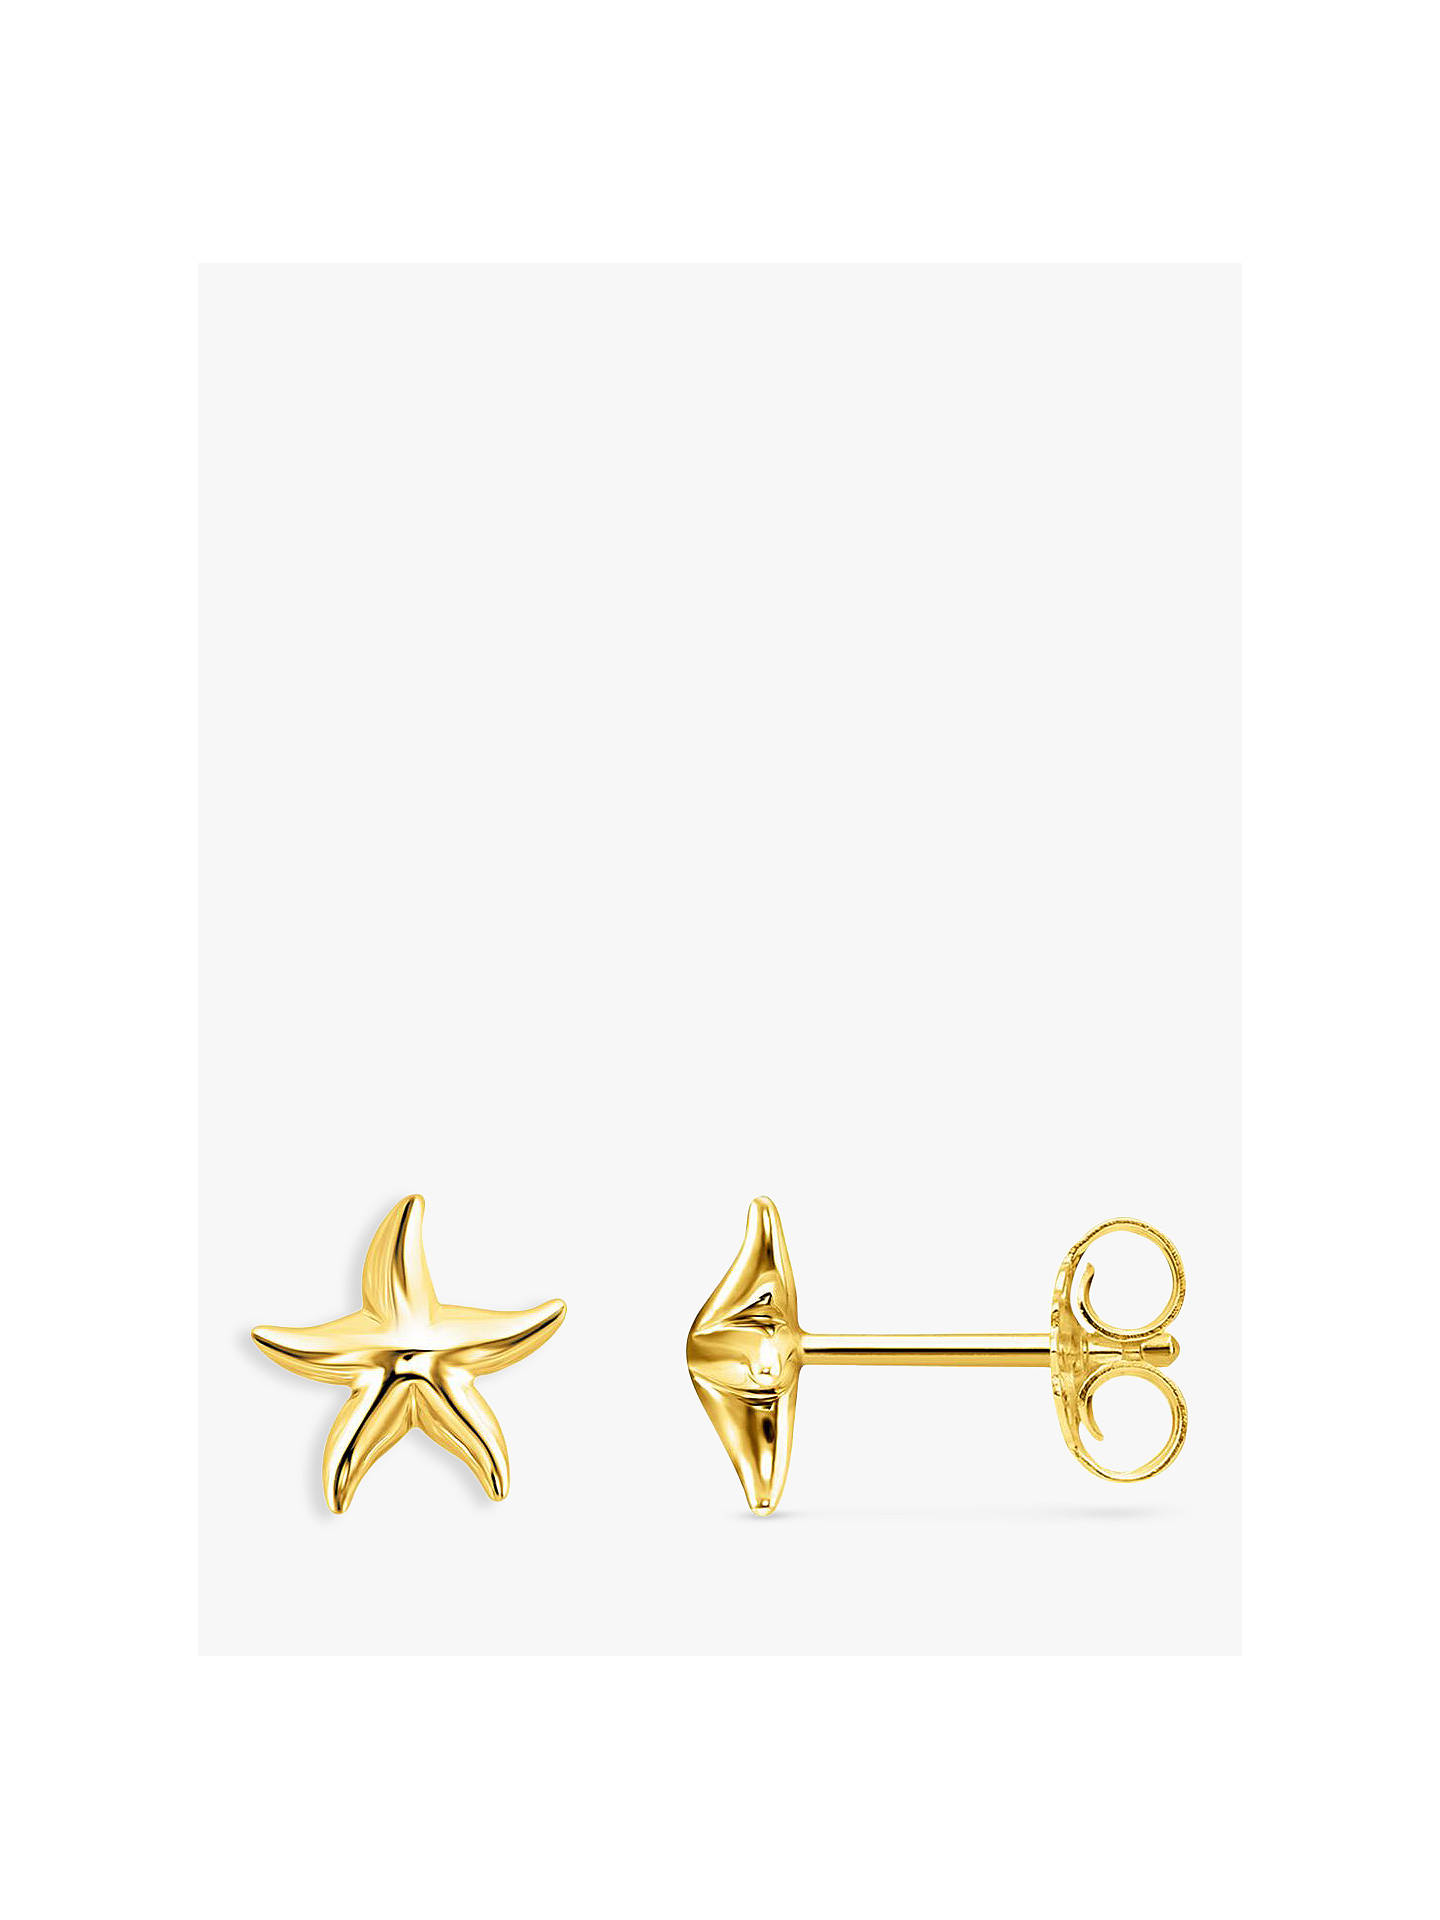 Thomas Sabo Starfish Stud Earrings Gold Online At Johnlewis